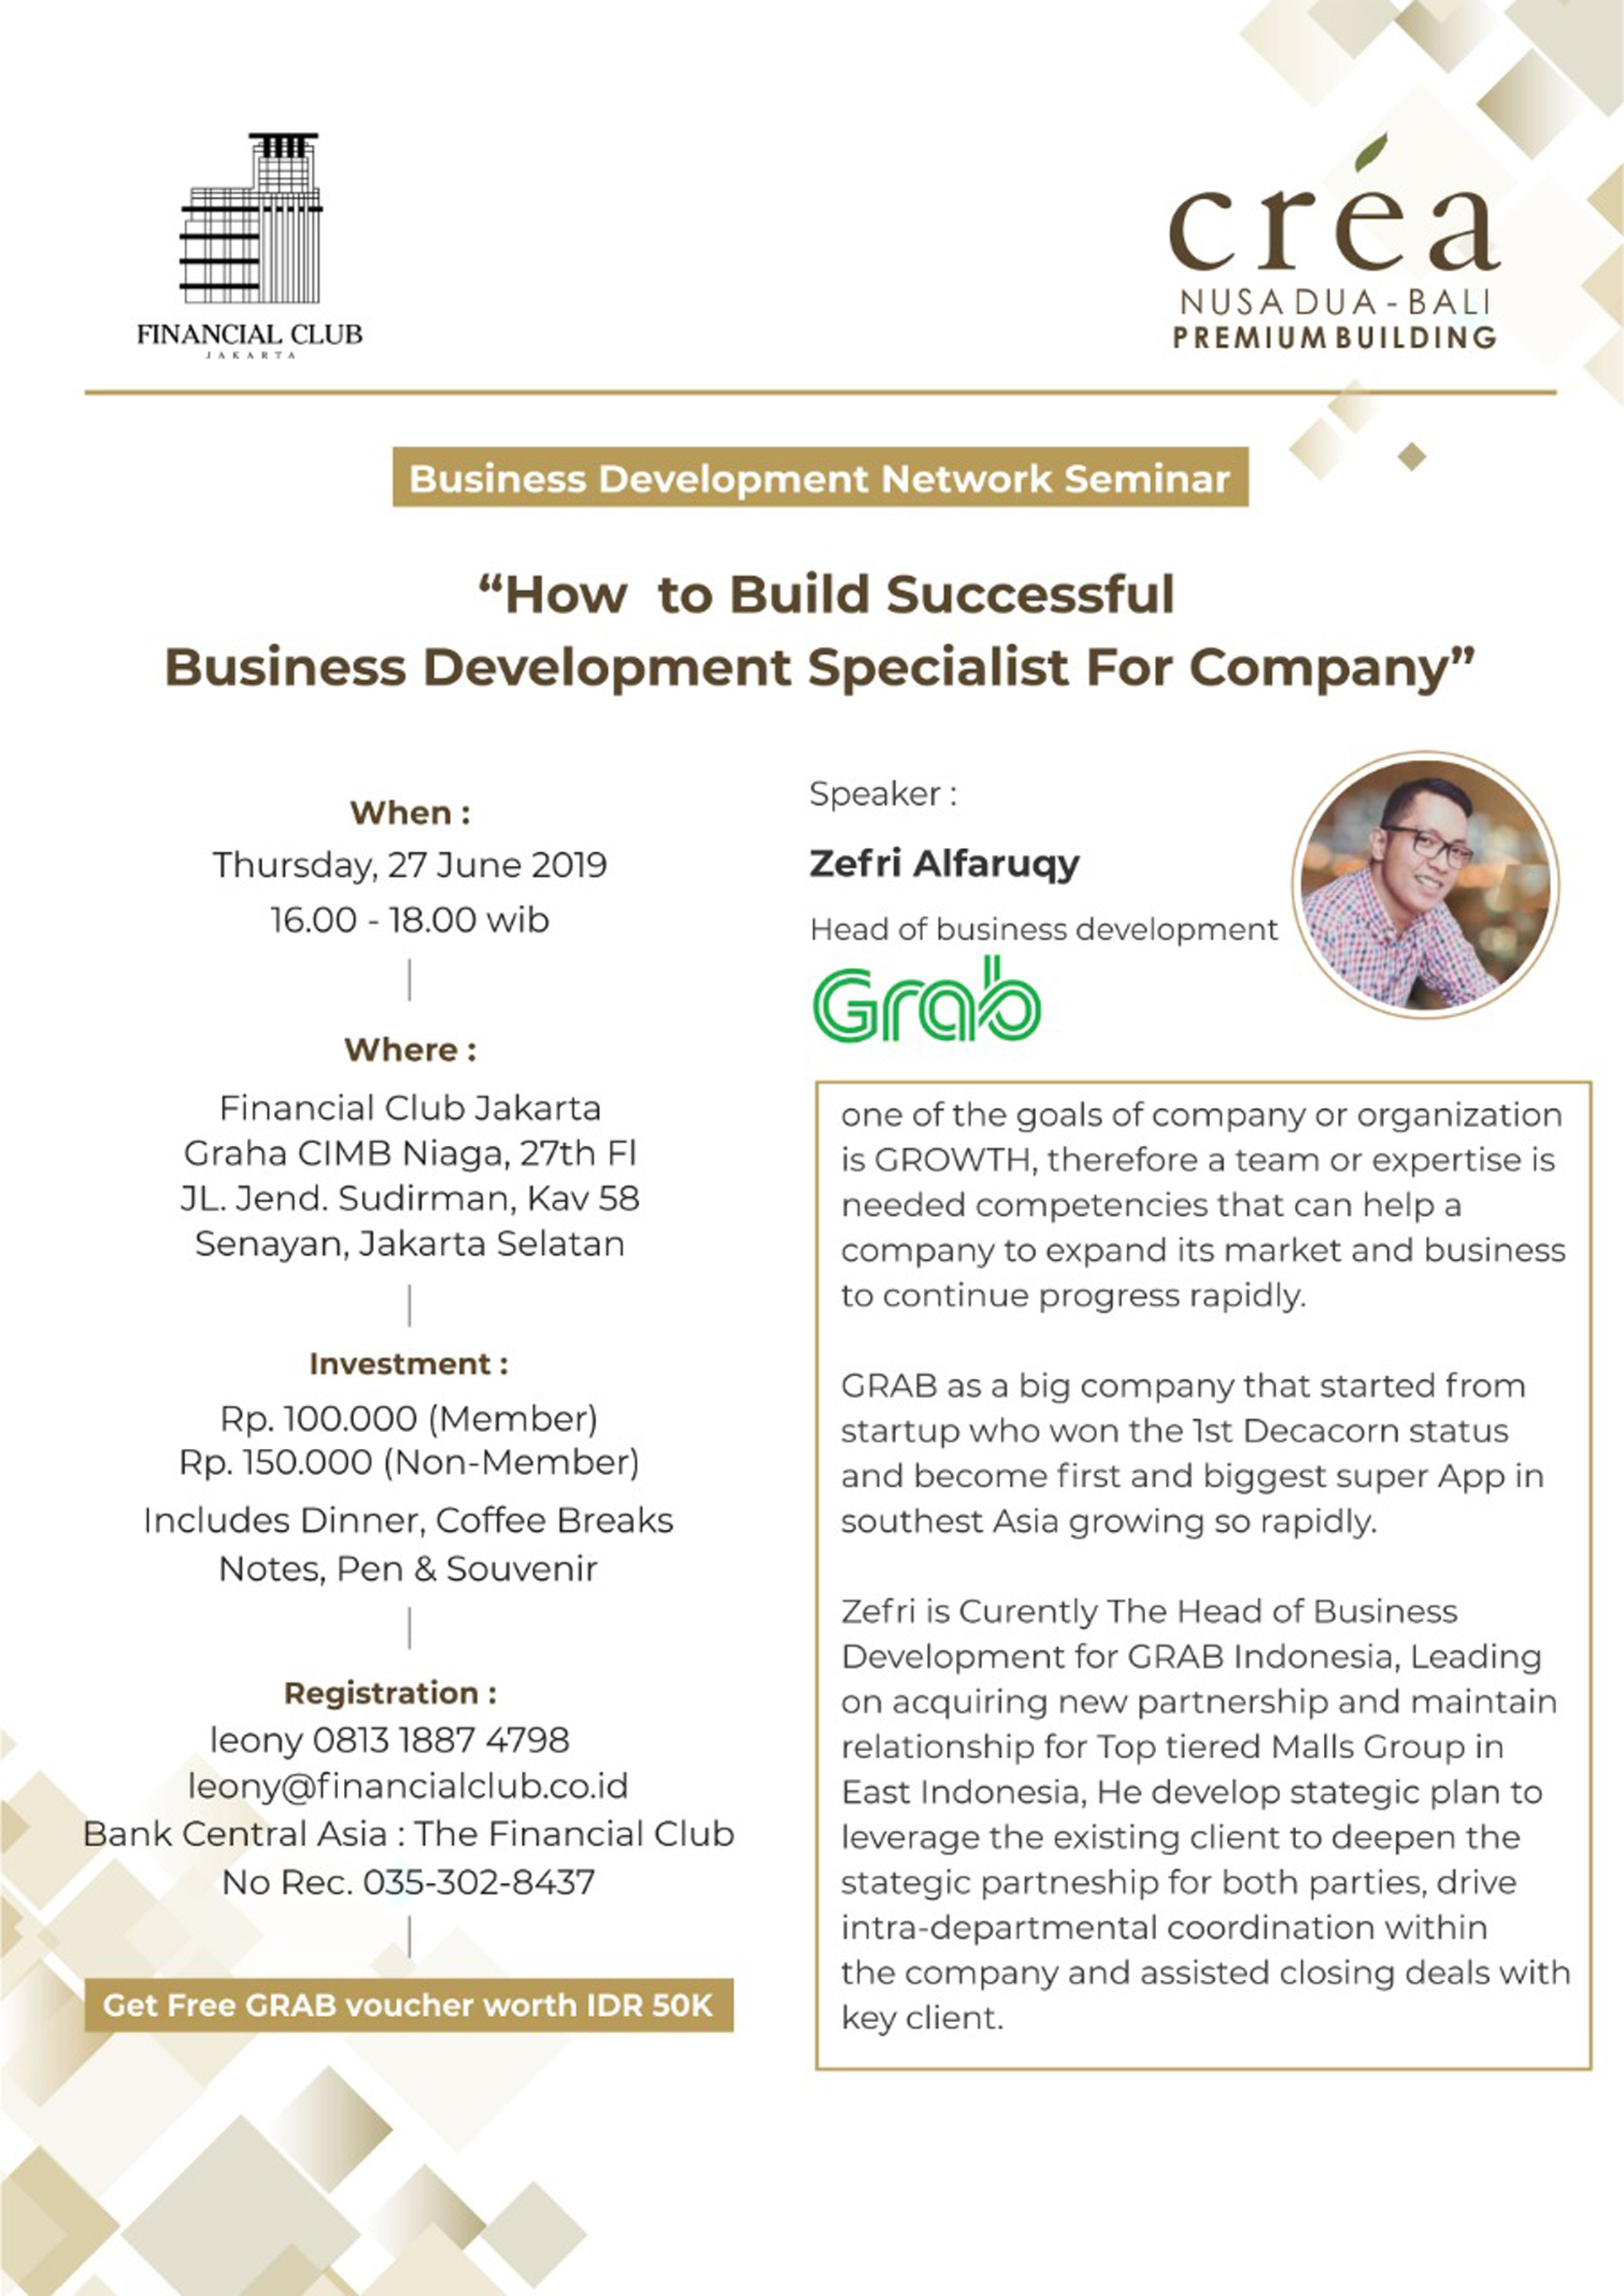 Business Development Network Seminar | Thursday, 27 June 2019 at 16.00 - 18.00 WIB